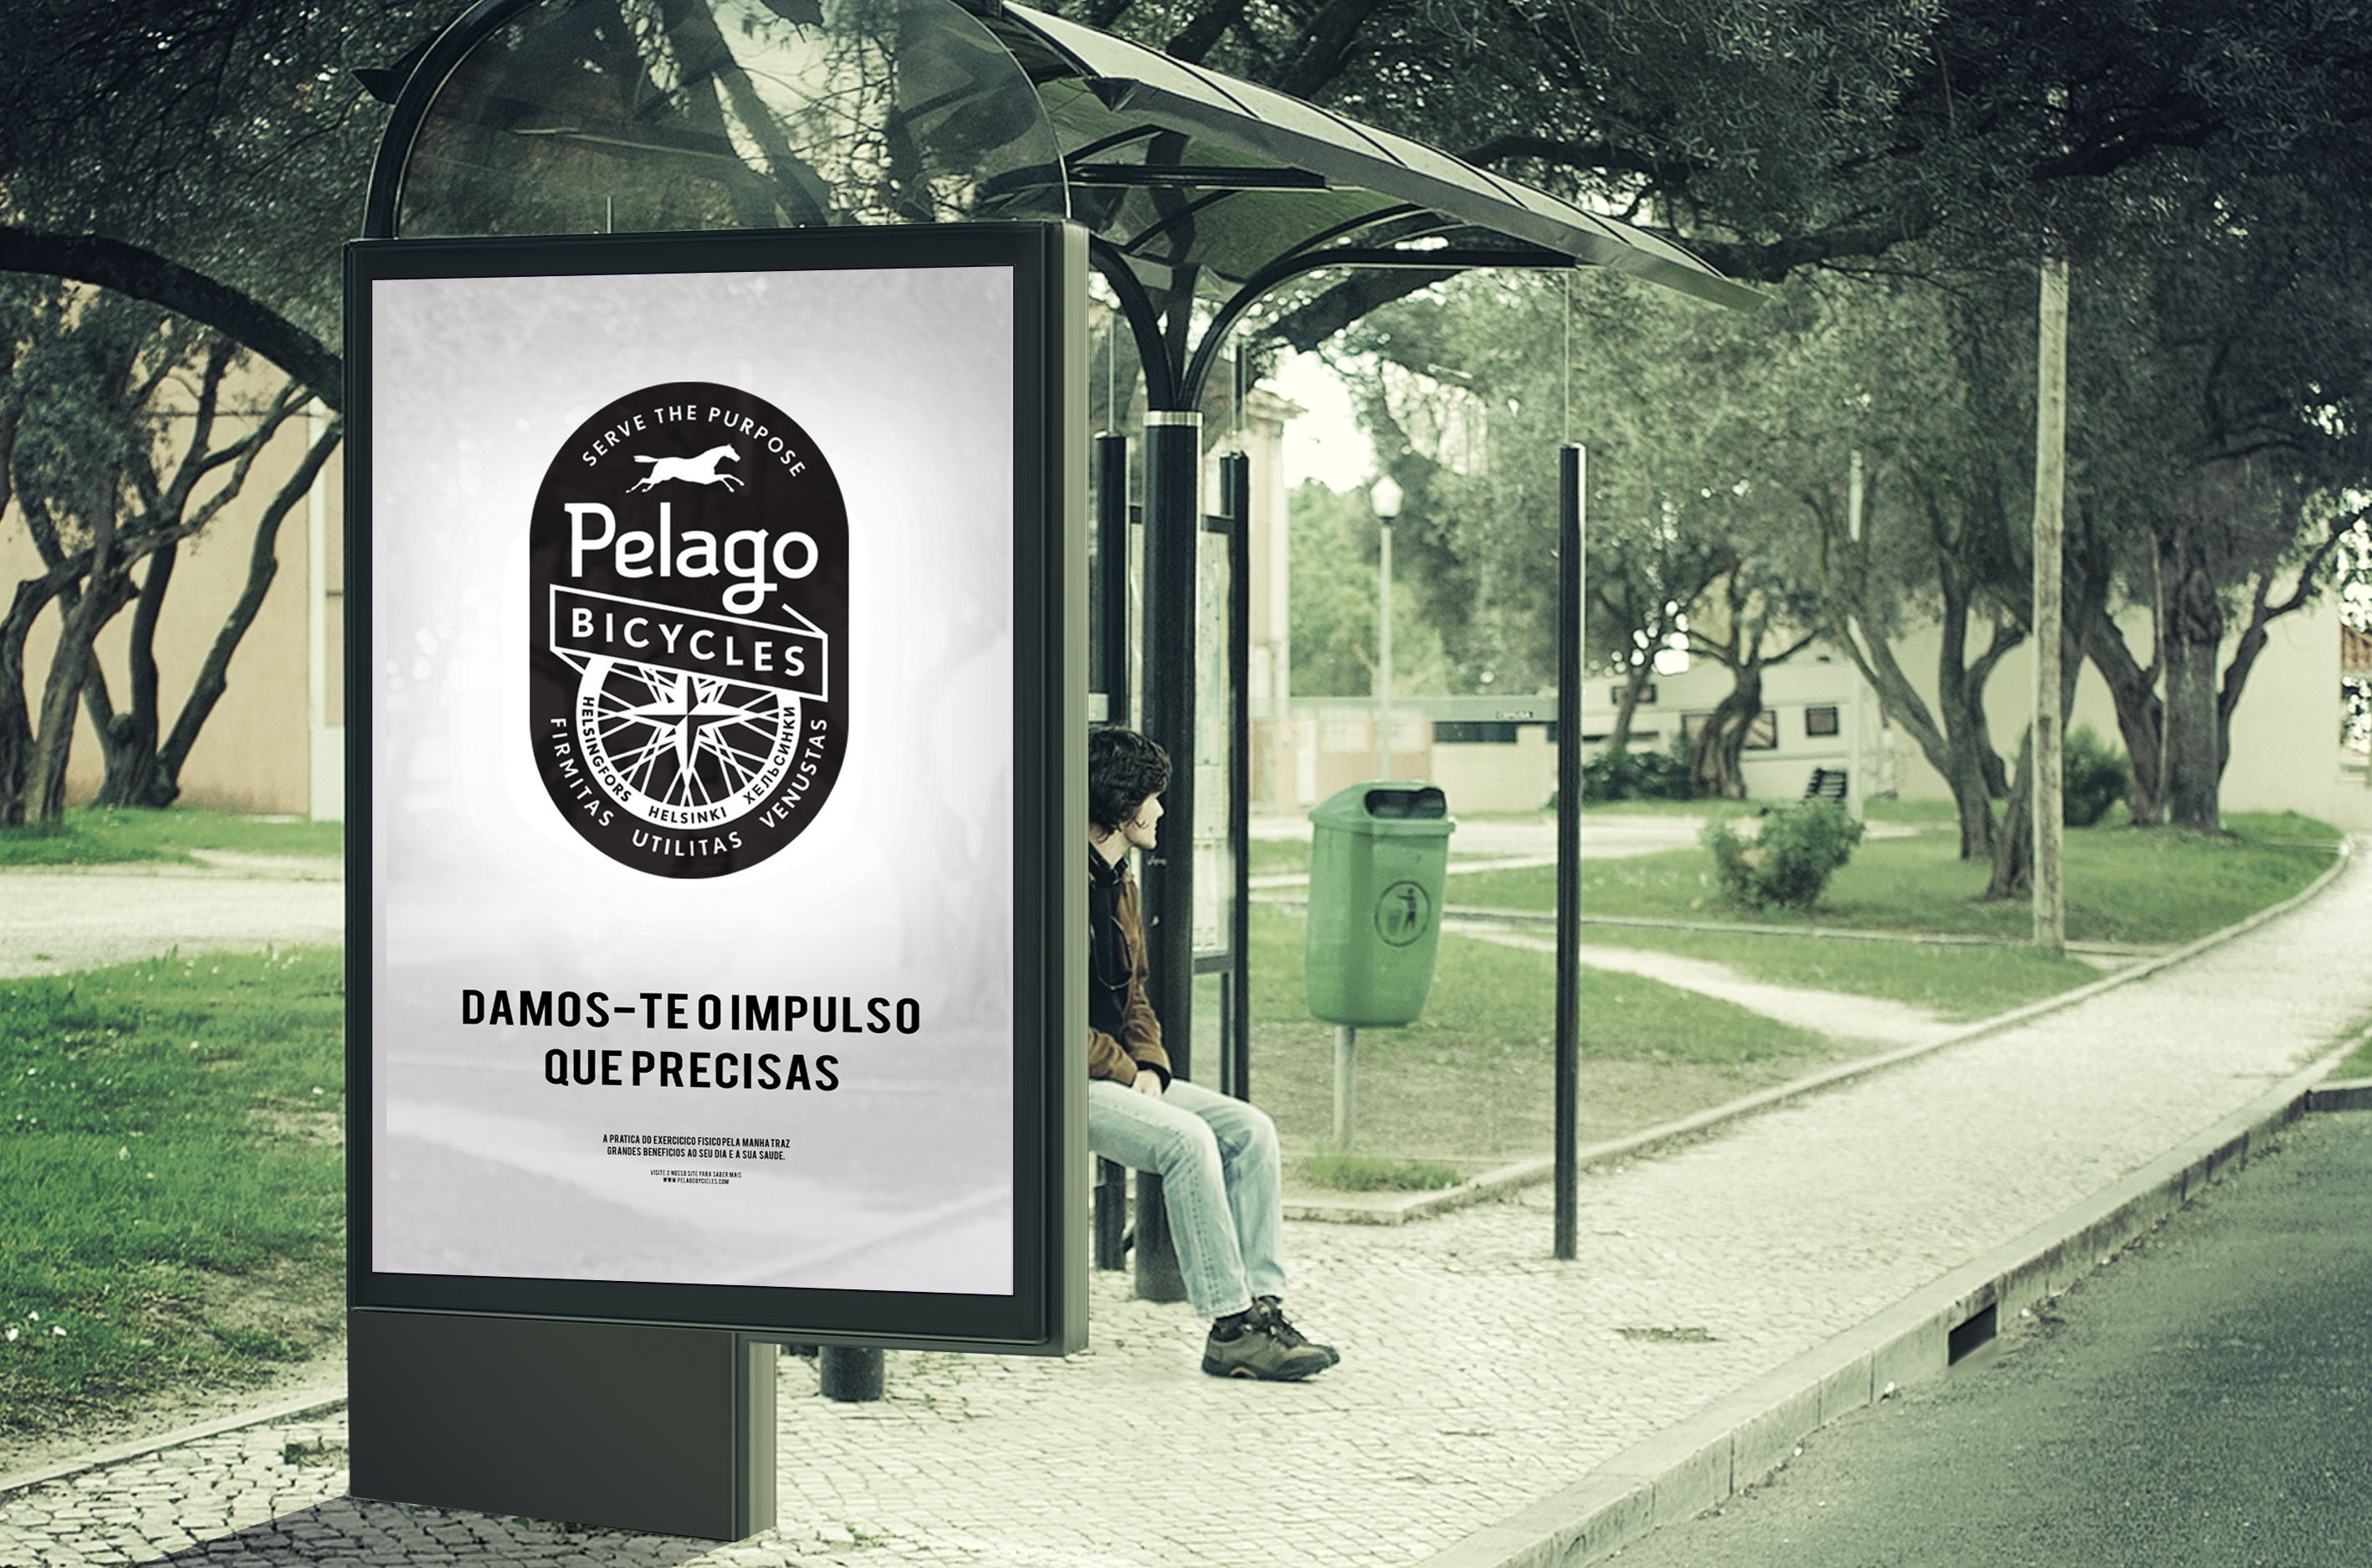 Pelago Bicycles Ad bus station stop